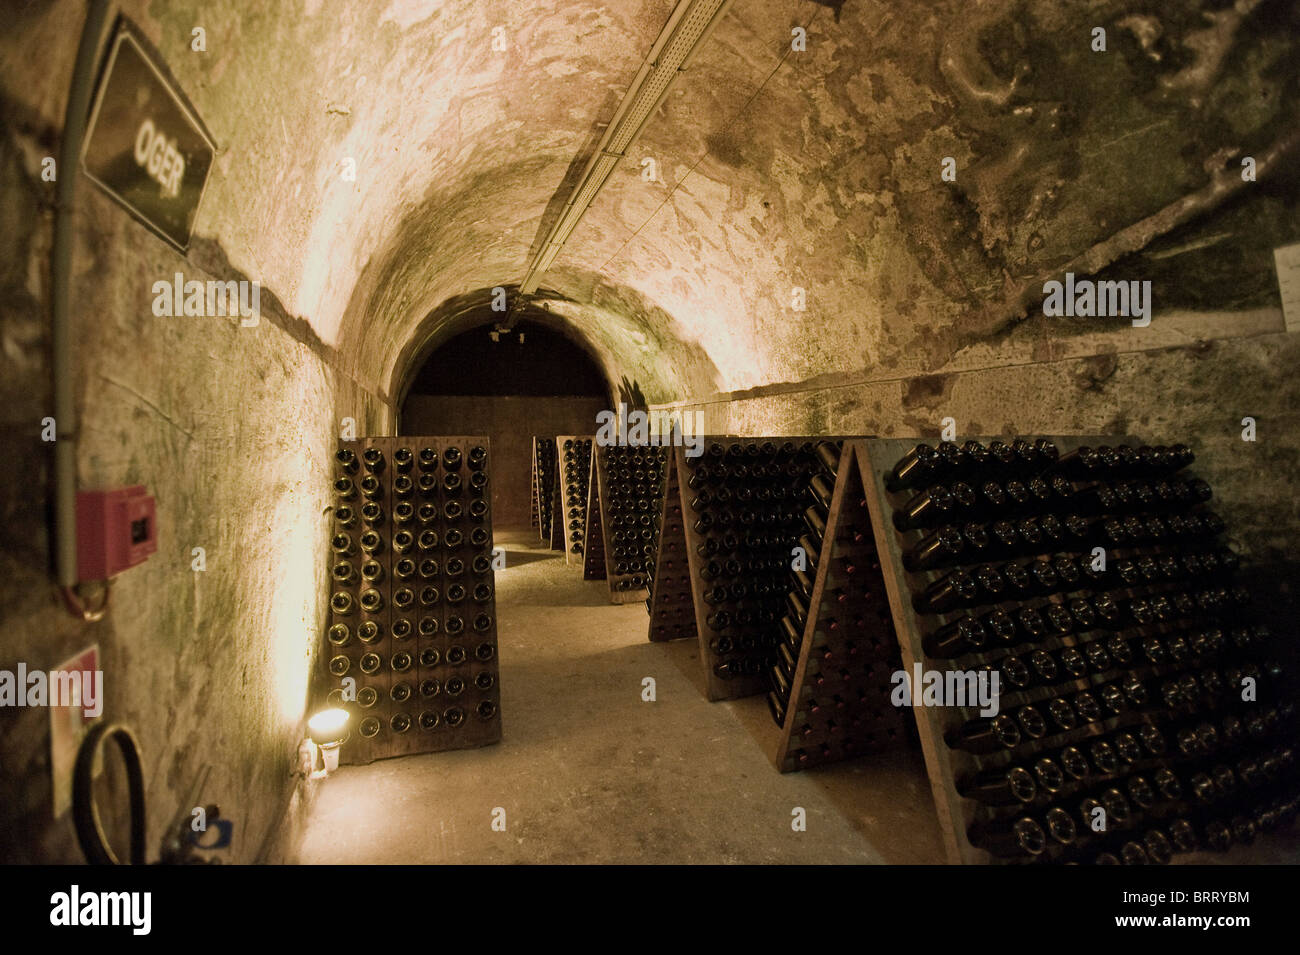 Mumm Champagne cellar, Reims, Champagne-Ardennes, France - Stock Image